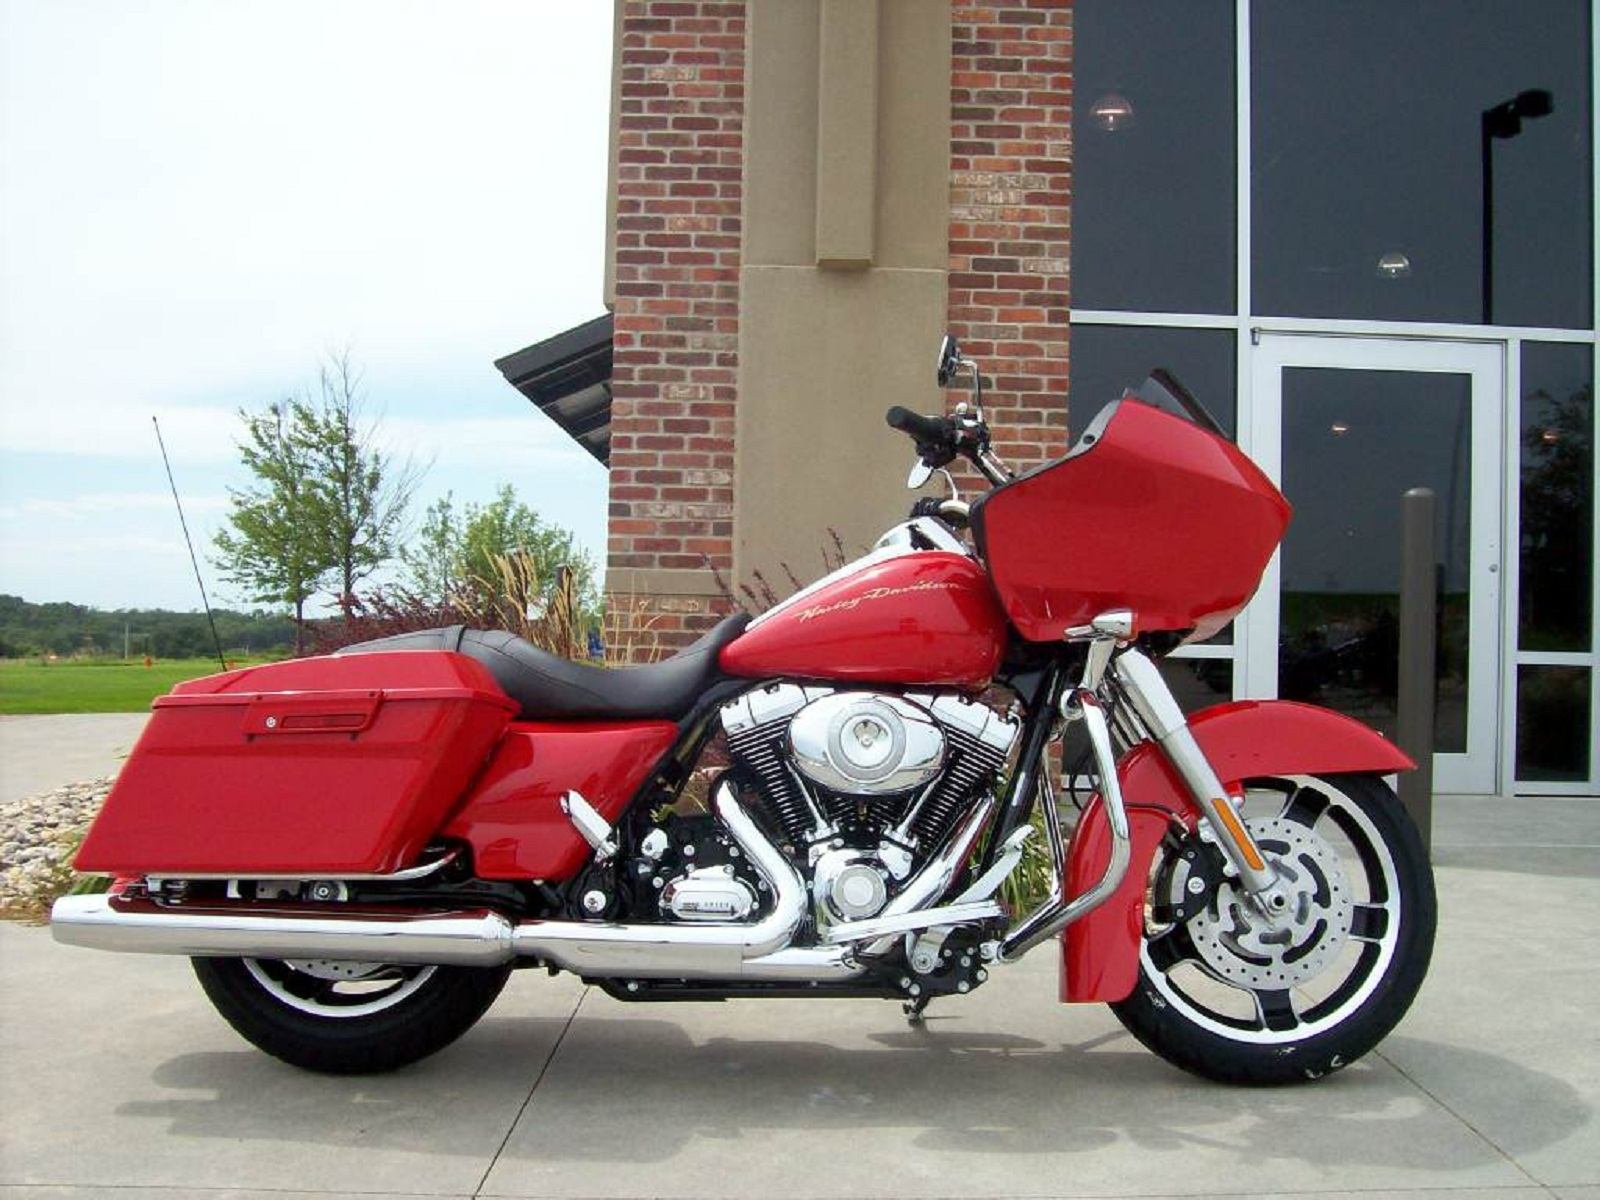 2012 Harley Davidson Touring Fltrx Road Glide Custom Top Speed Red